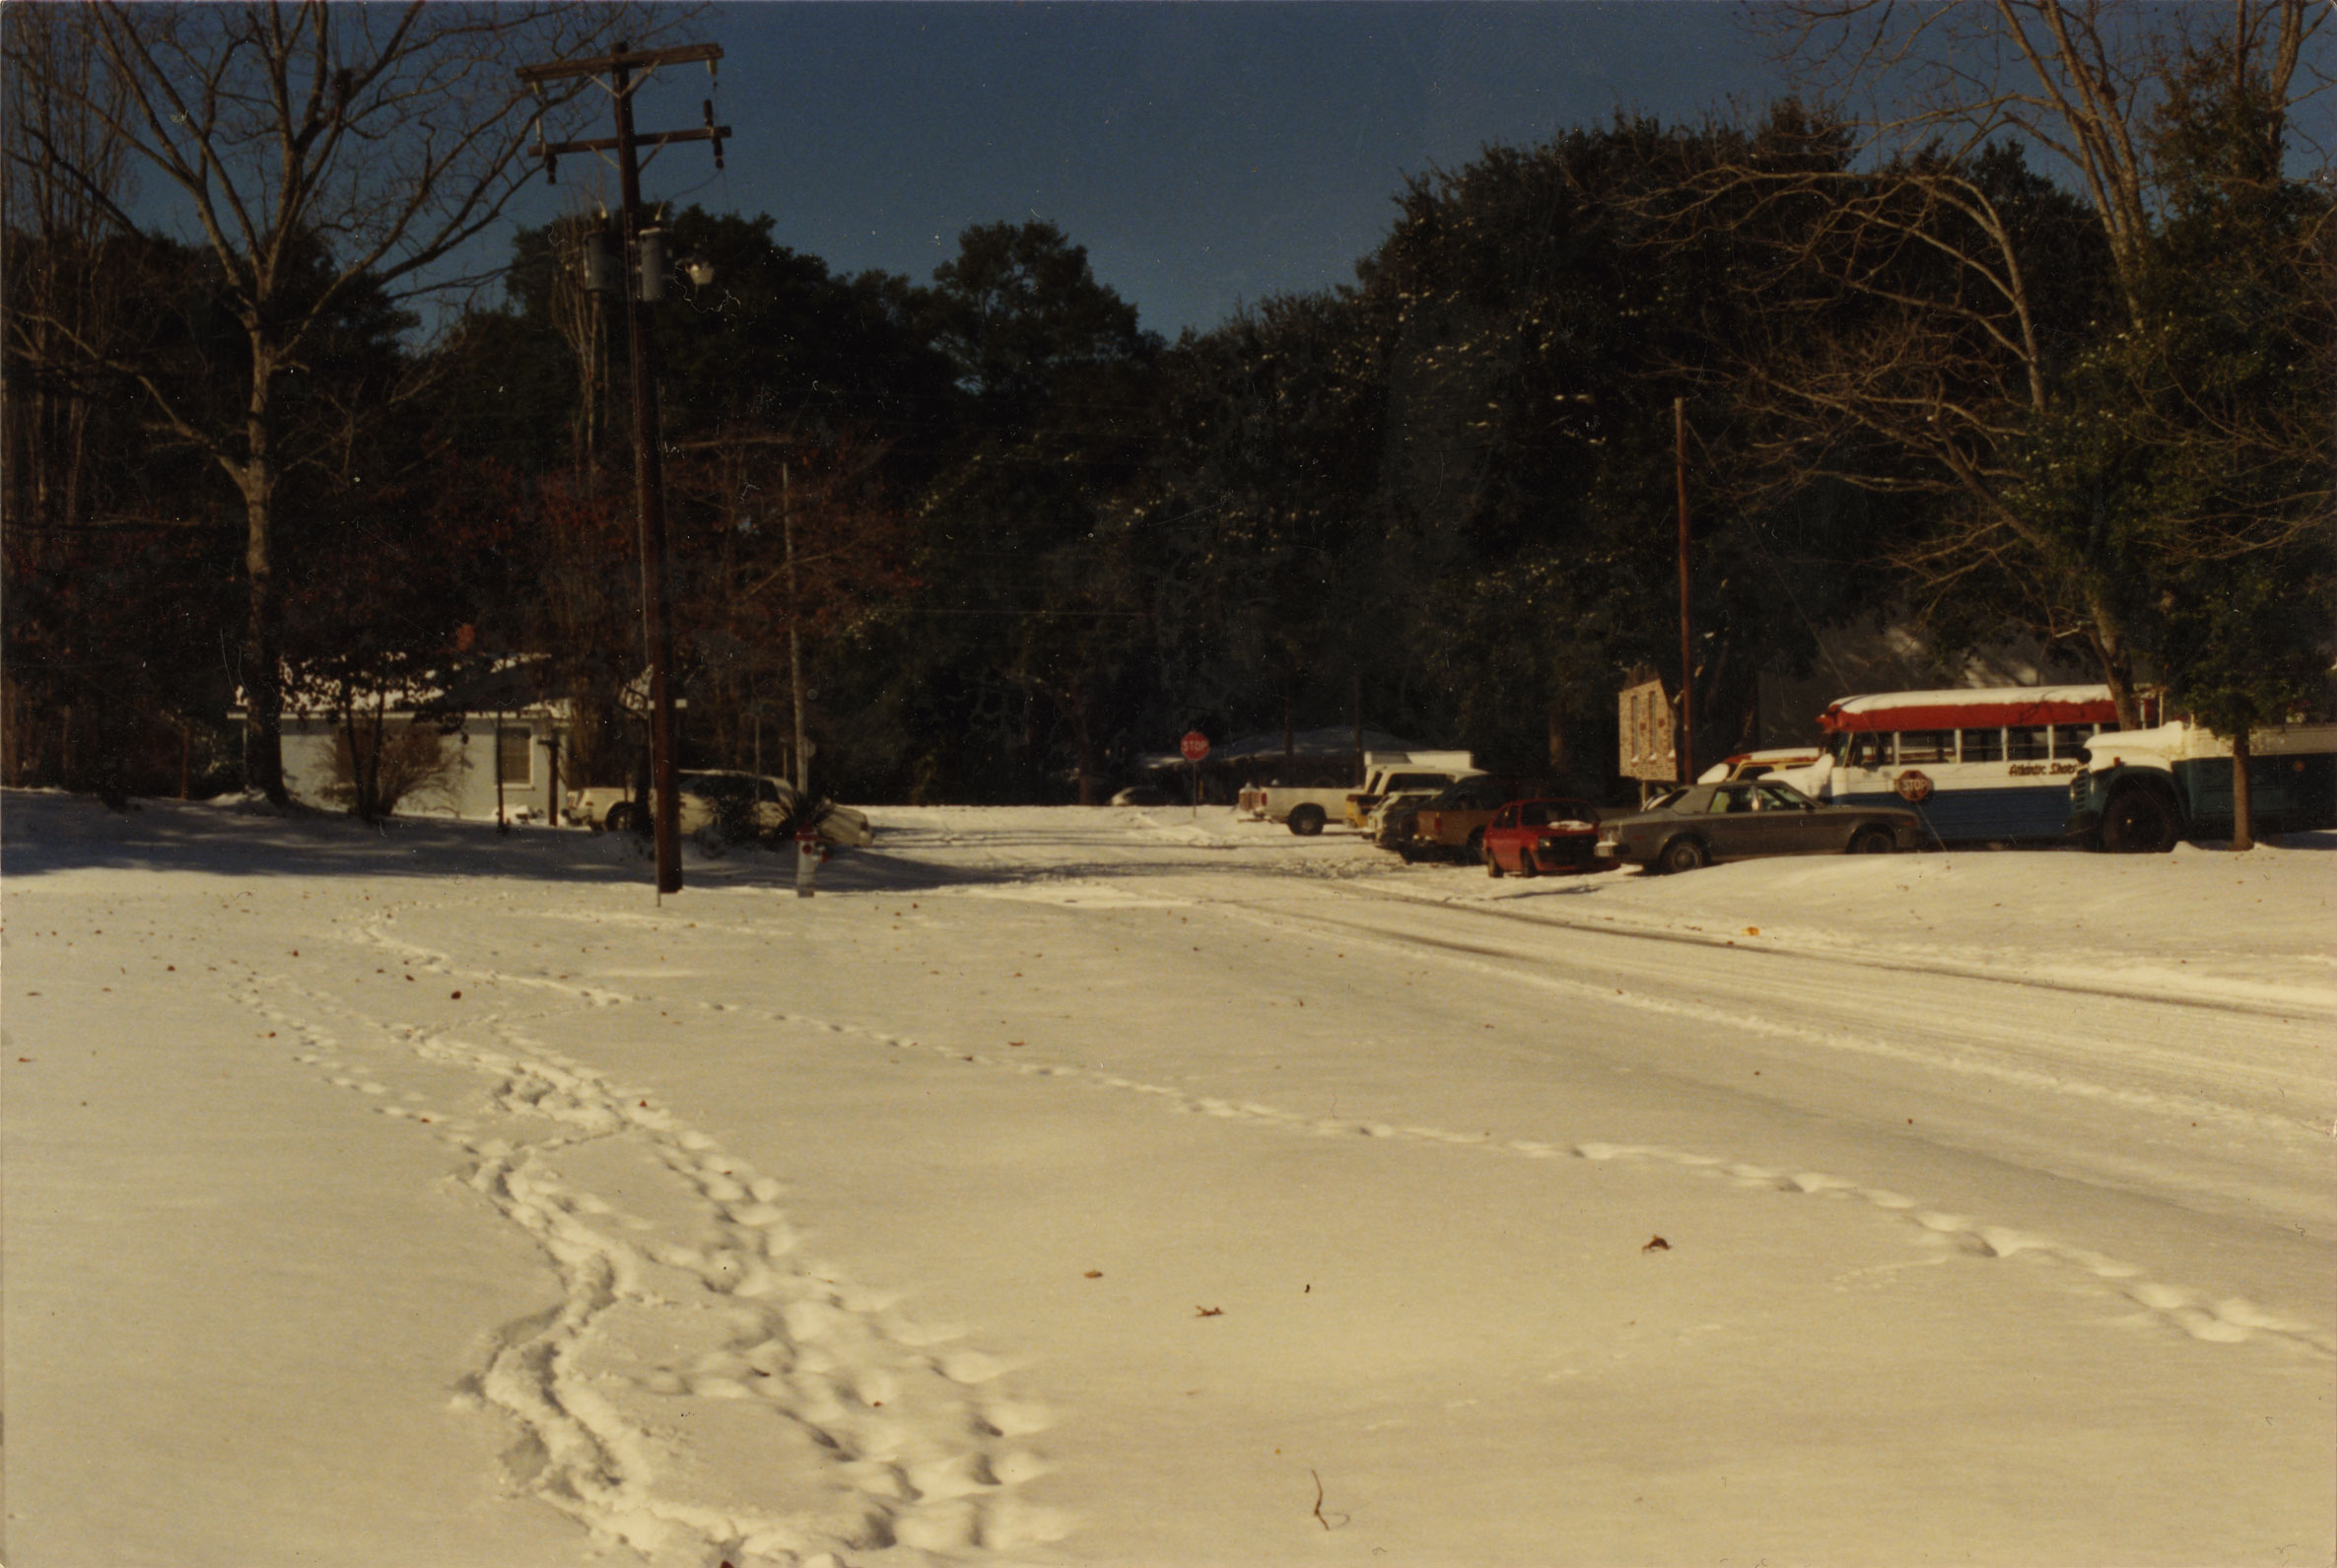 Snow on Prince Street looking towards Ribaut Road